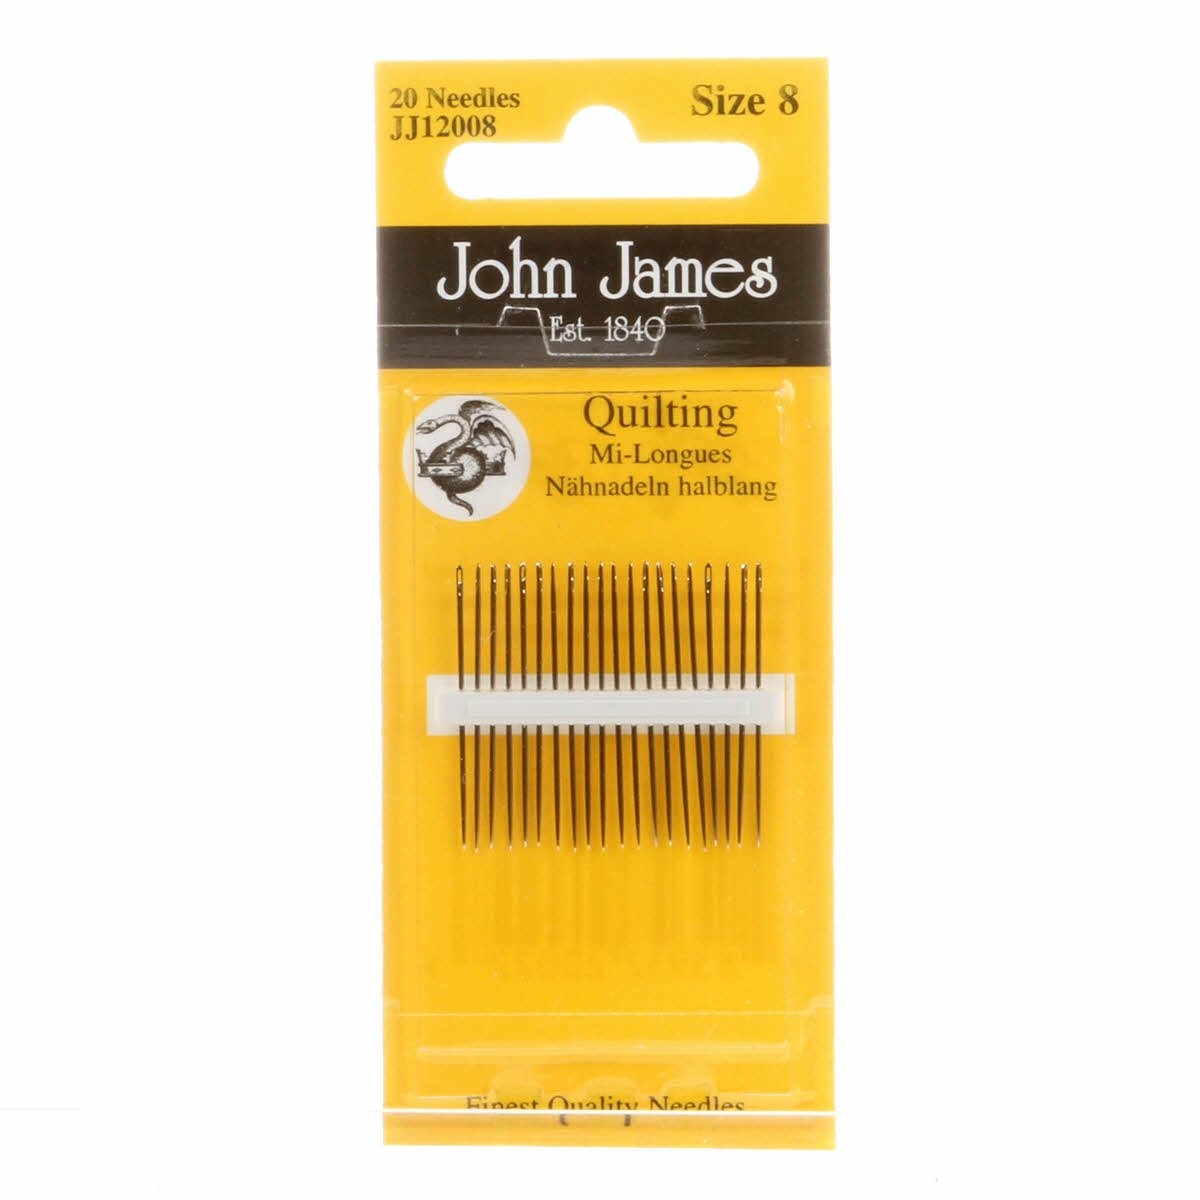 John James Quilting Needles Size 8